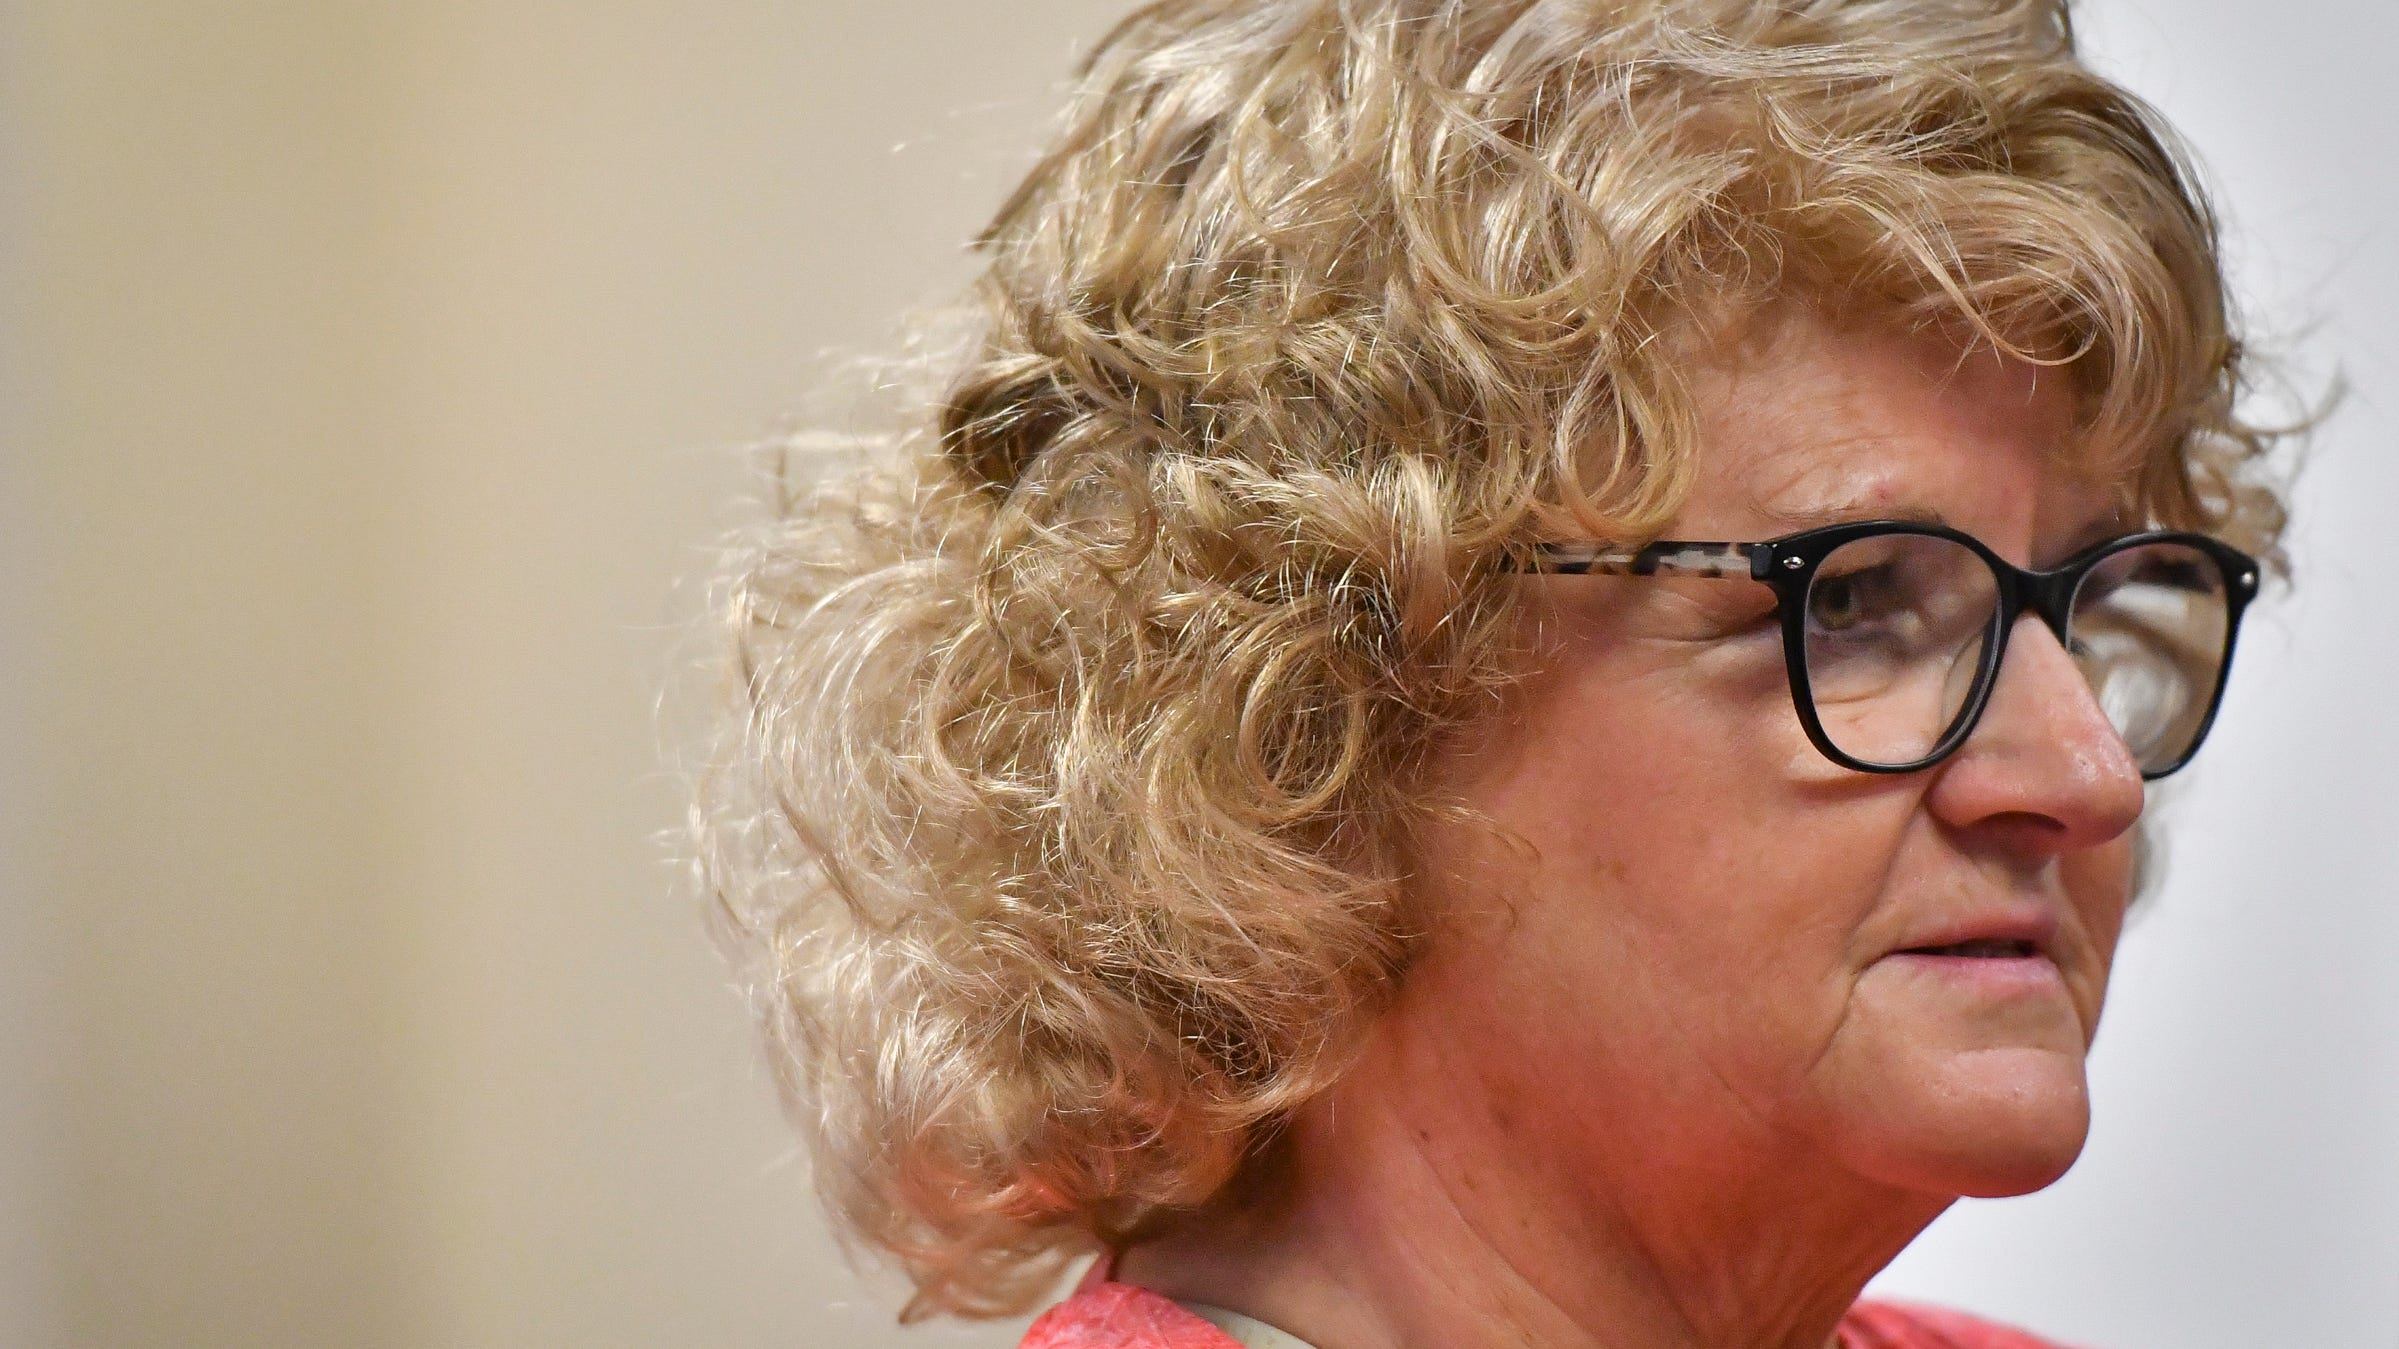 Klages' lawyer made the comments on Friday afterthe former coach made her second appearance in court